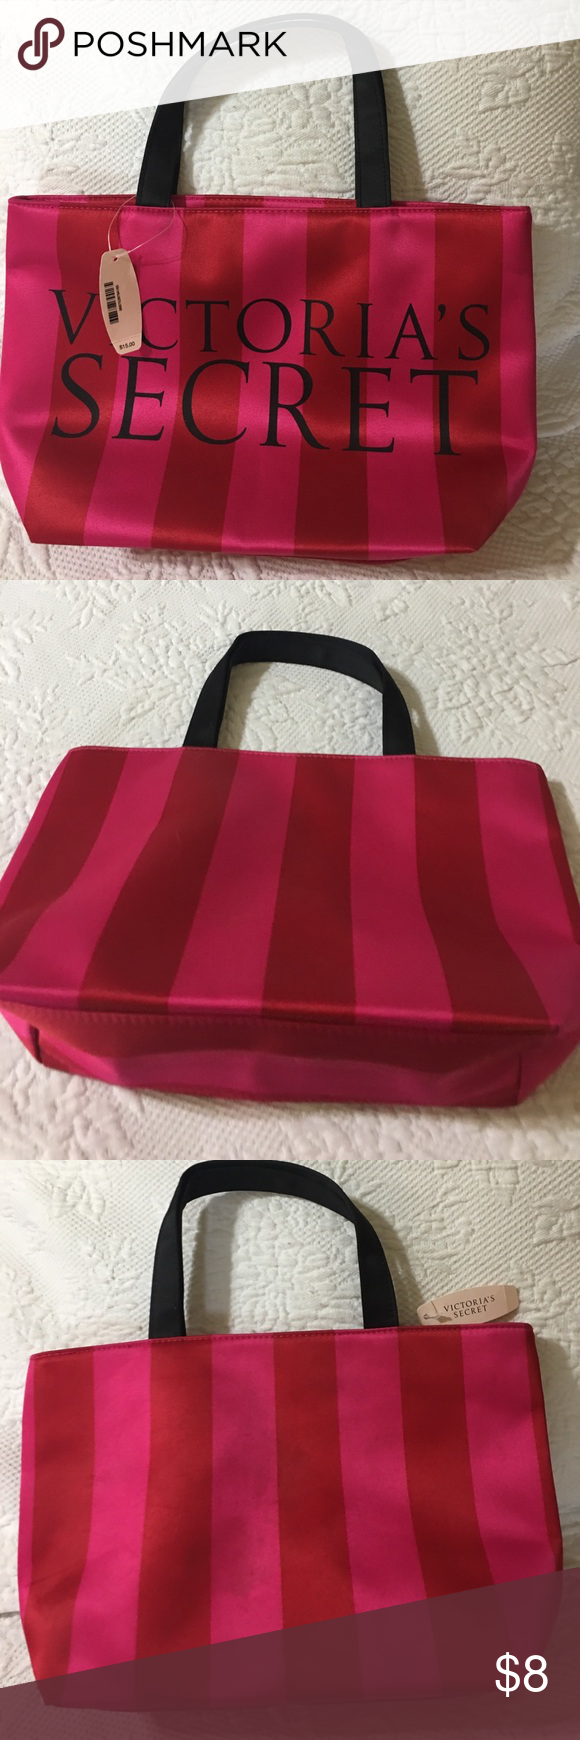 Victoria Secret mini tote Victoria Secret mini tote. Great for cosmetic bottles Victoria's Secret Bags Cosmetic Bags & Cases